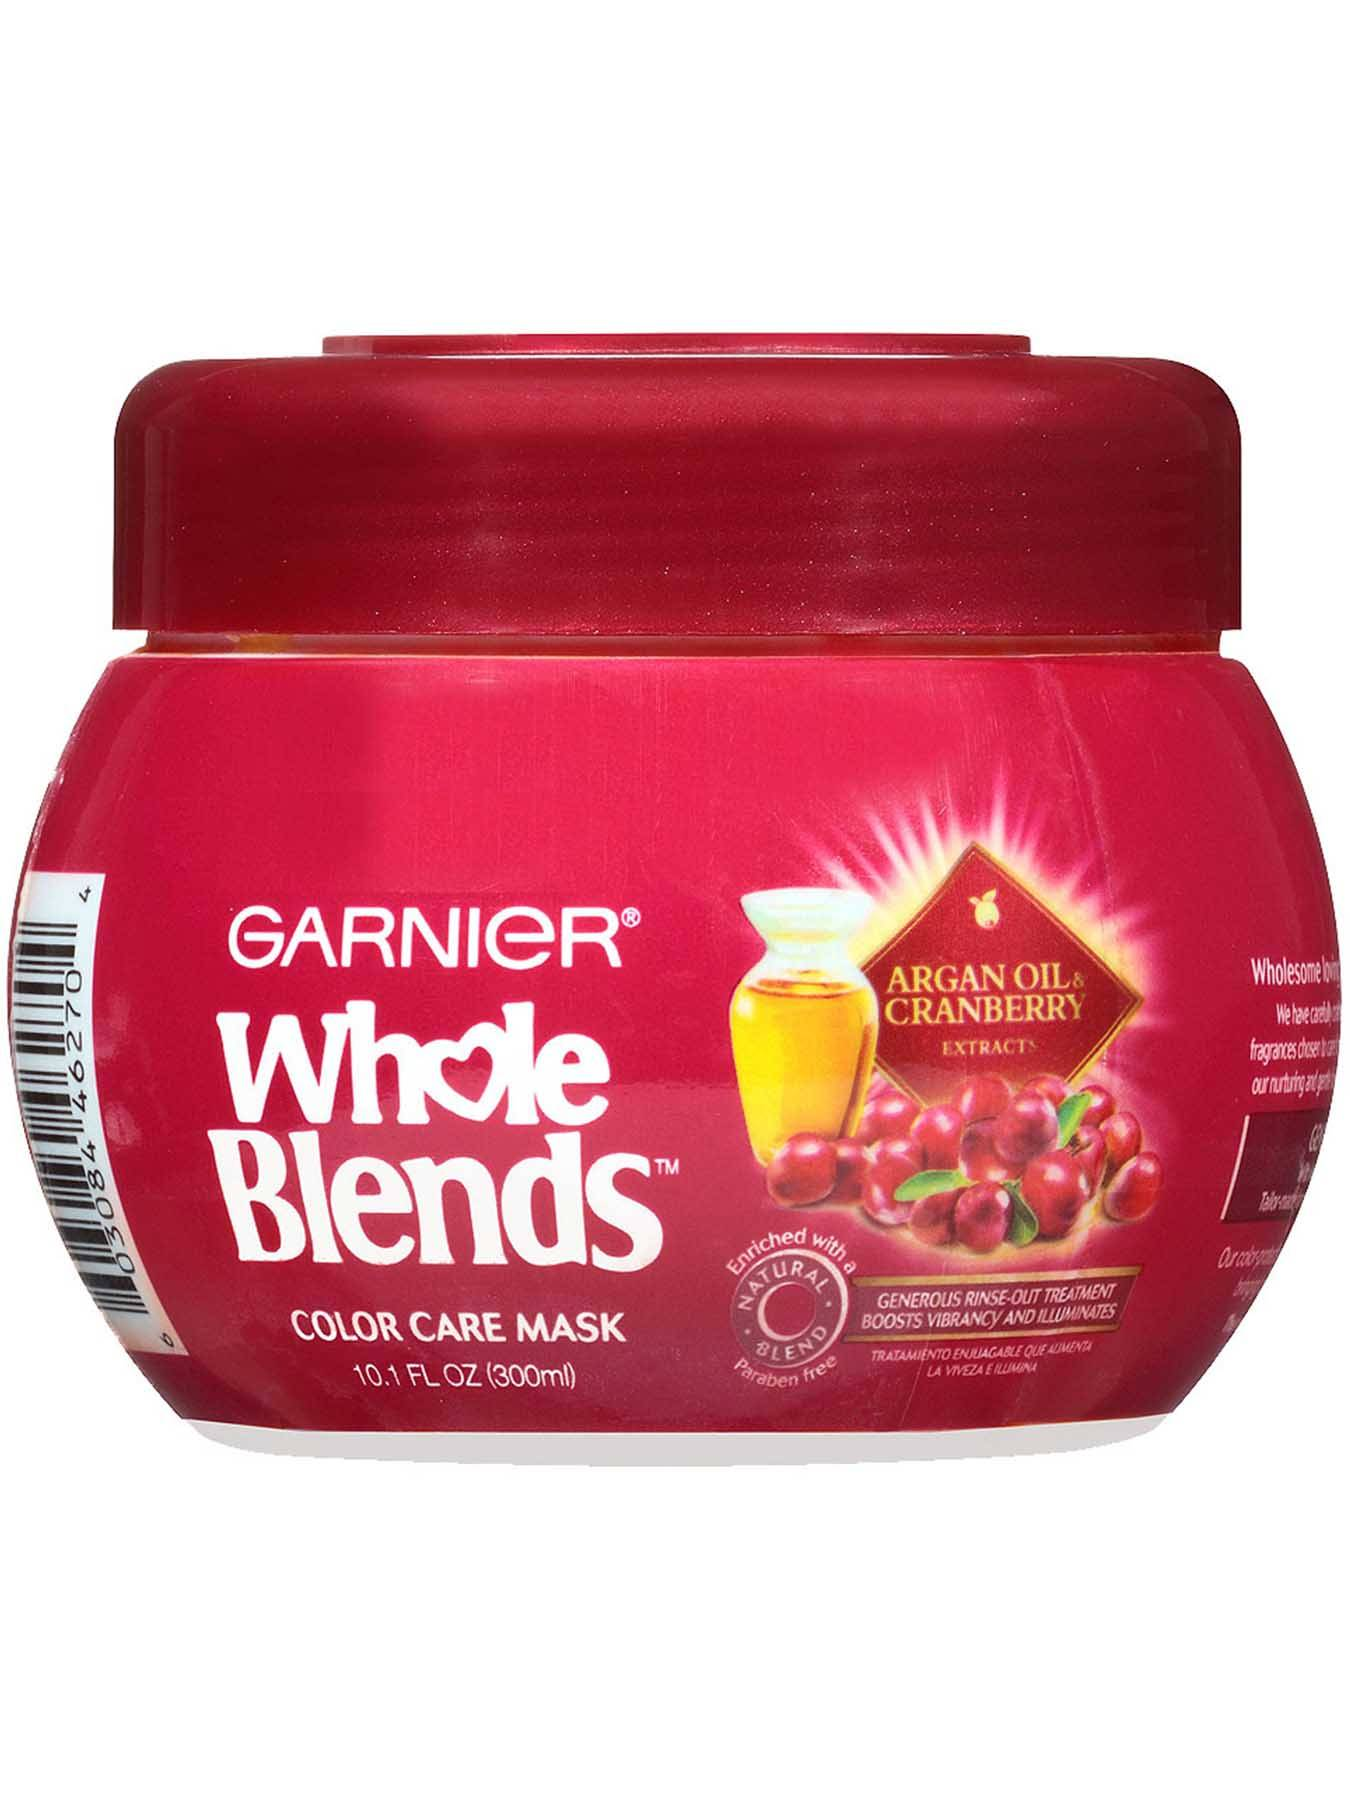 Garnier Whole Blends Color Care Mask Argan Oil Cranberry Extracts Front Of Bottle